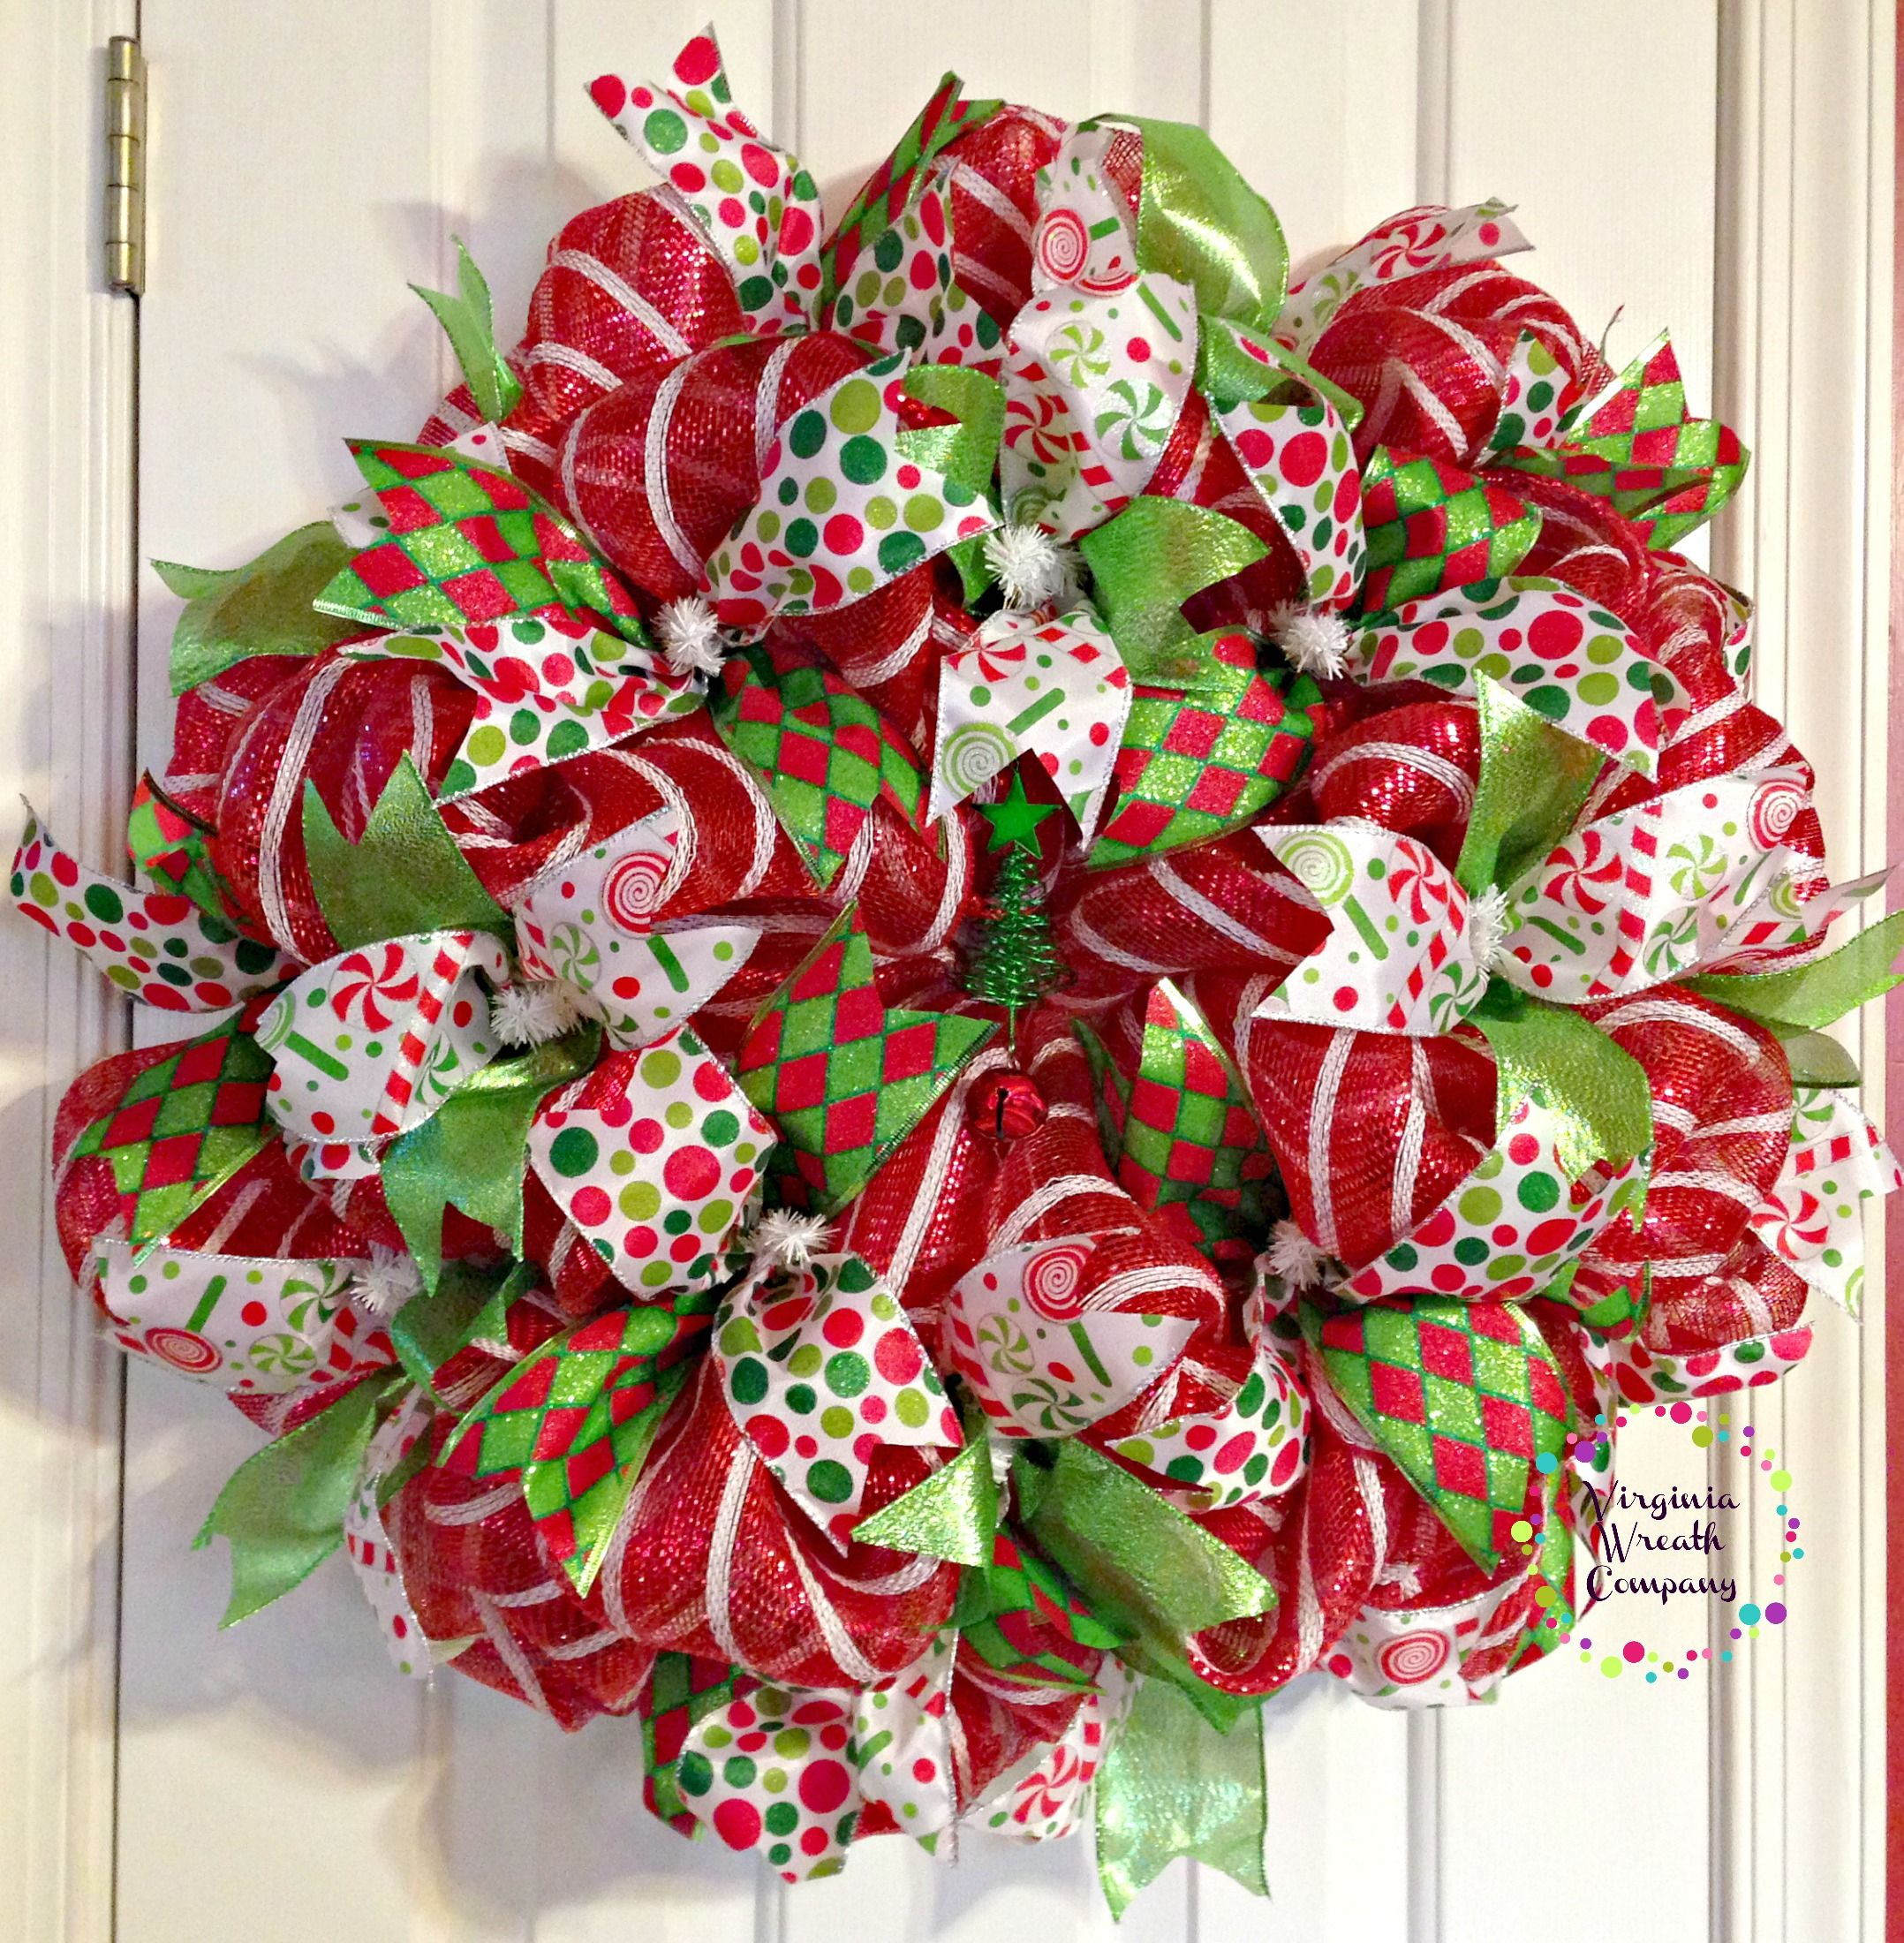 Christmas Tree Facebook Cover Photo: Red And White Deco Mesh Base Wreath Features 4 Different